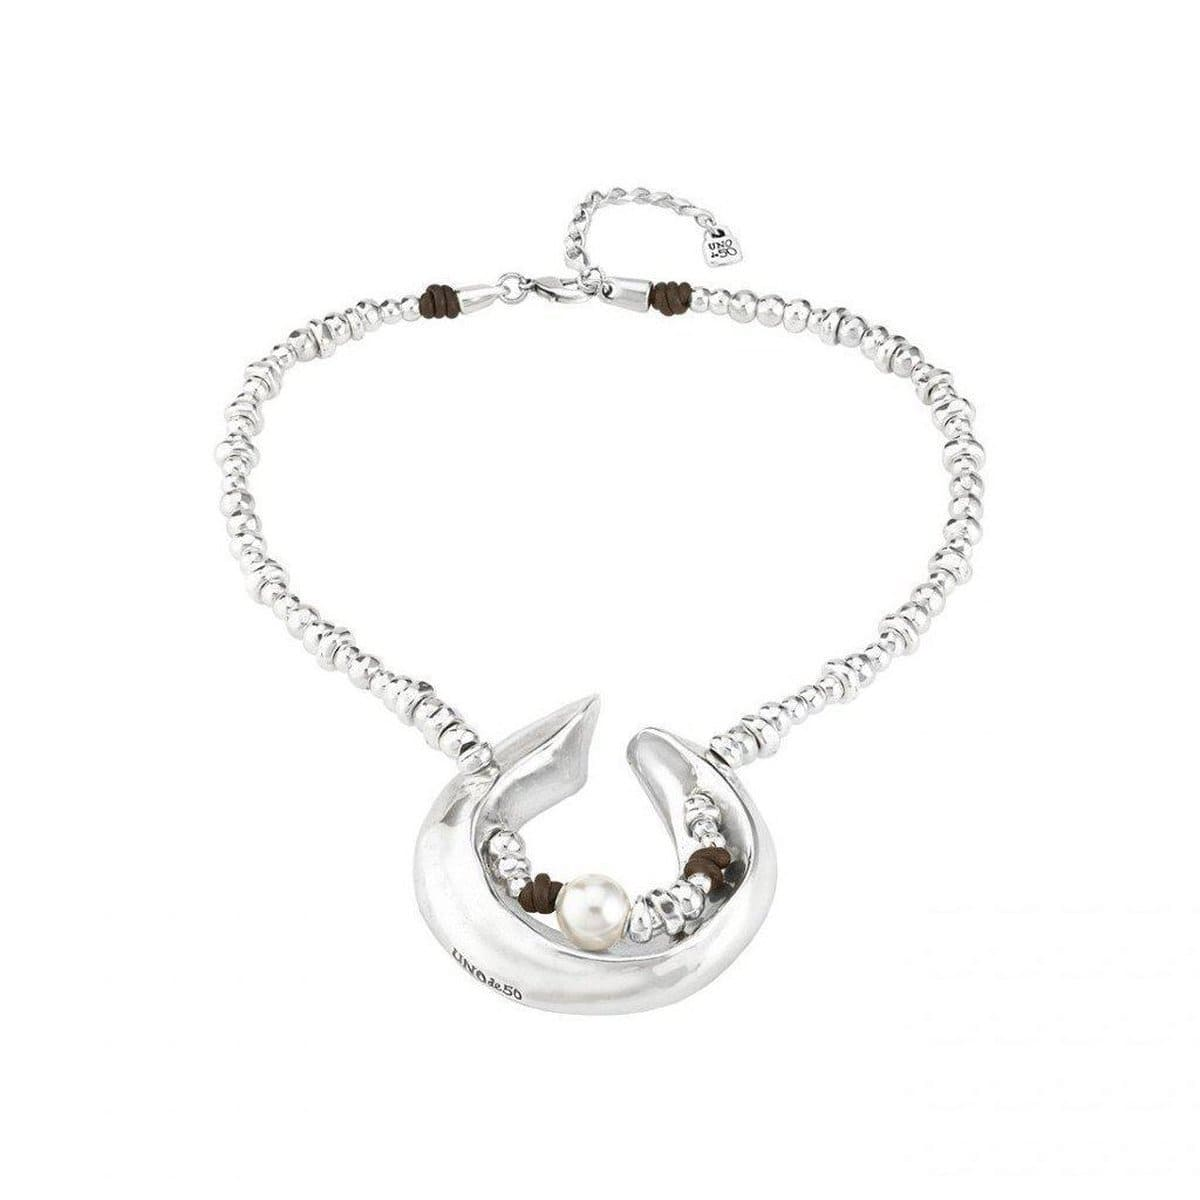 Half Moon Necklace - COL1249BPLMTL0U-UNO de 50-Renee Taylor Gallery